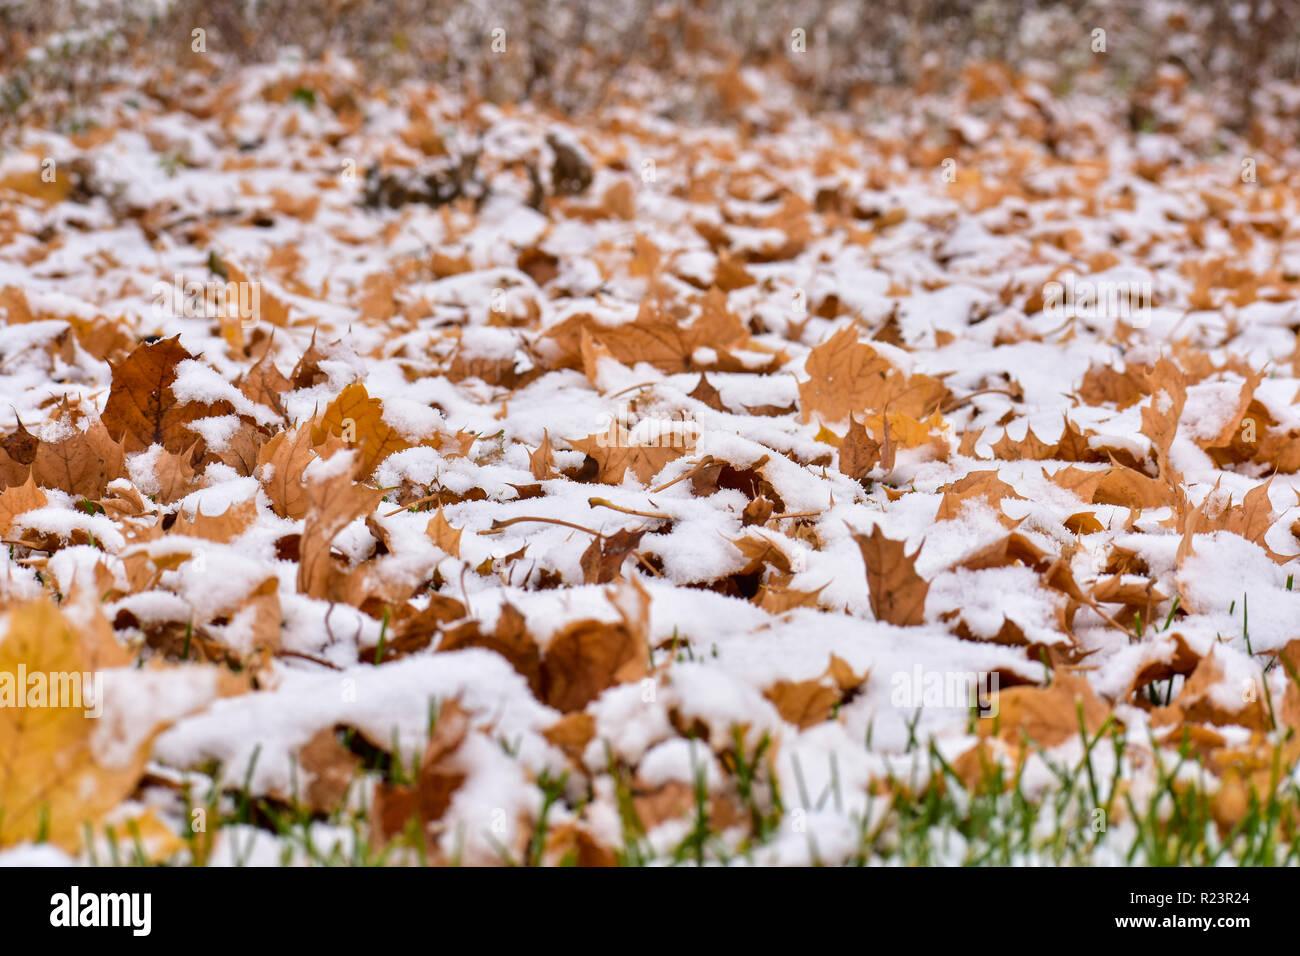 Fallen leaves covering the ground with a light dusting of snow on top of the fall leaves. This was taken in the November in Michigan. - Stock Image